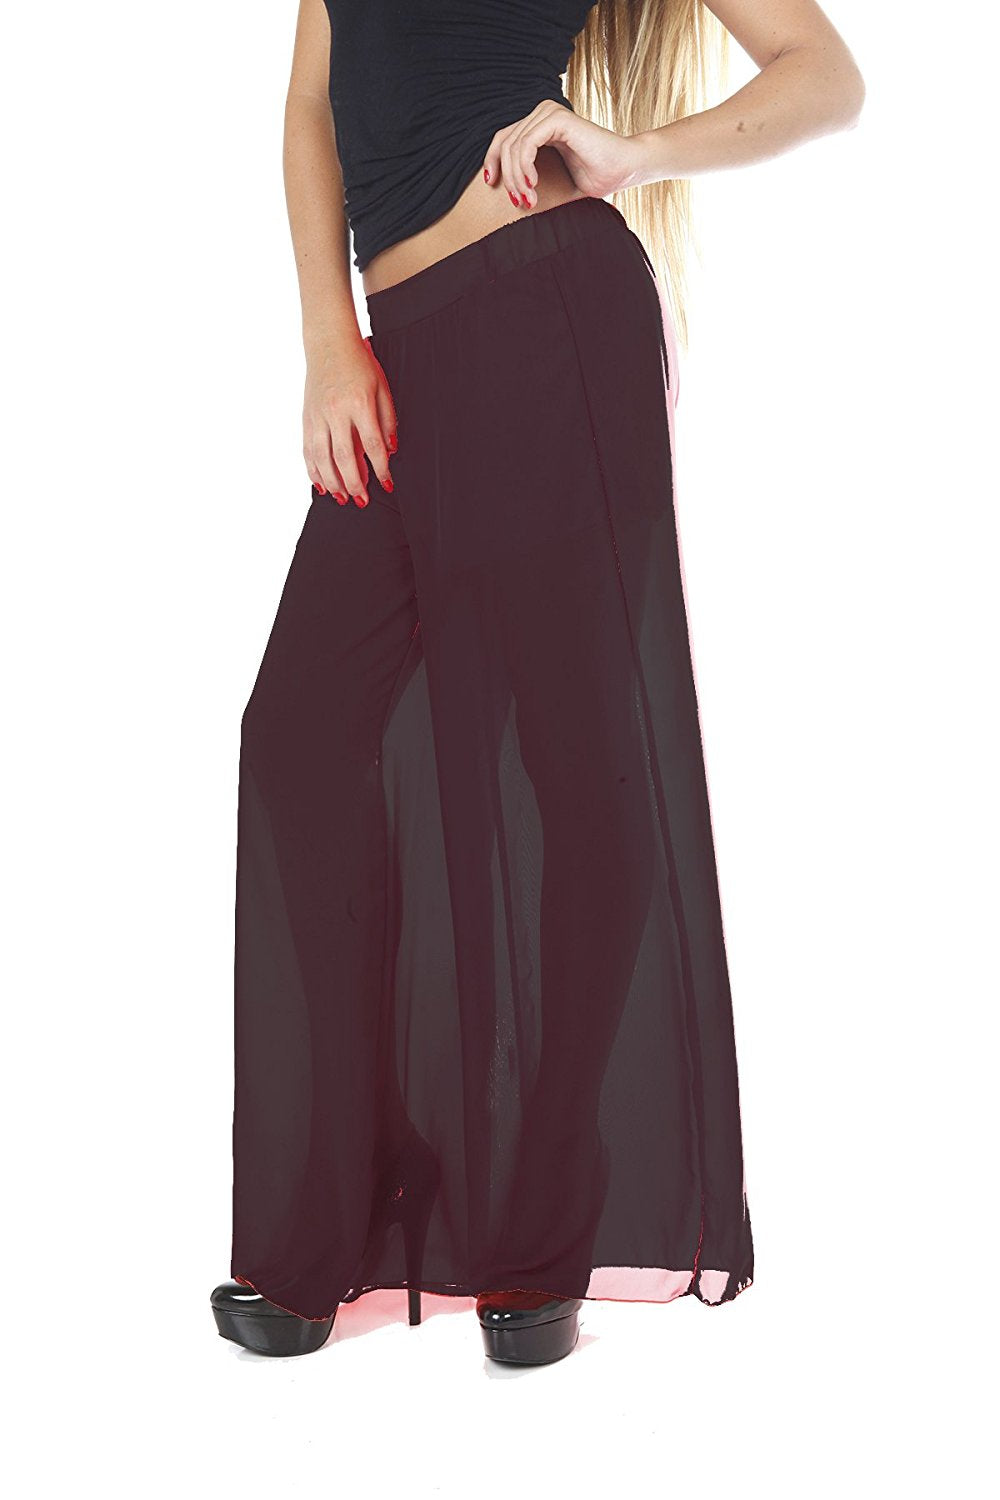 Hollywood Star Fashion Women's Full Length Chiffon Wide Pants with Shorts